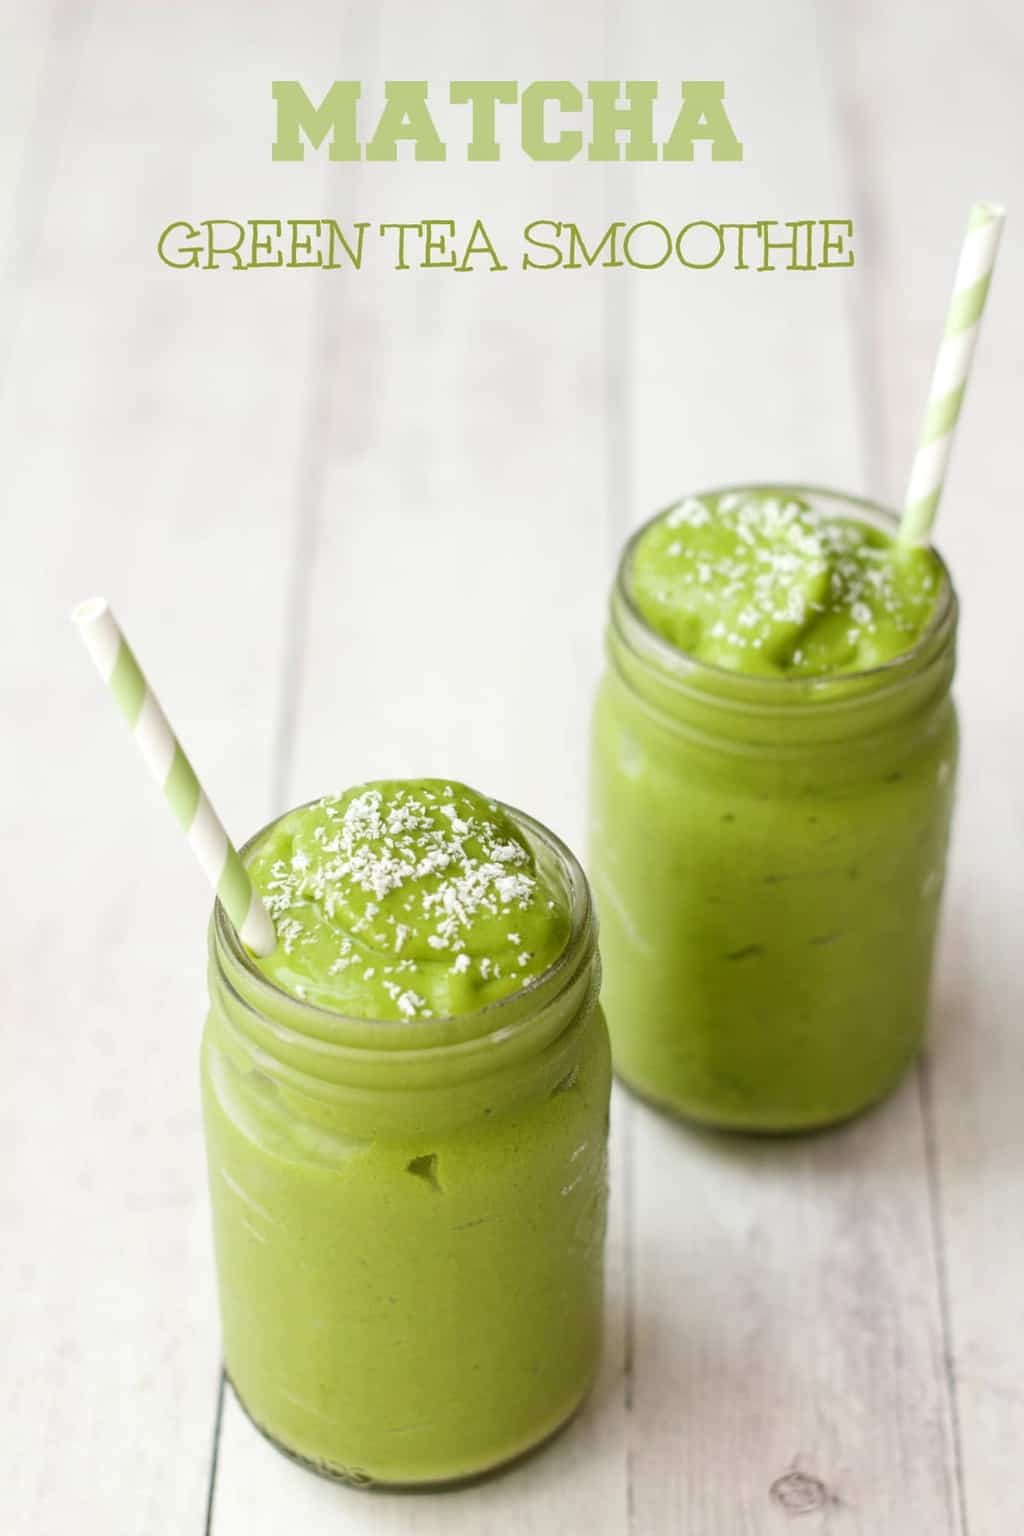 Matcha green tea smoothie topped with dessicated coconut in glasses with green and white striped straws.